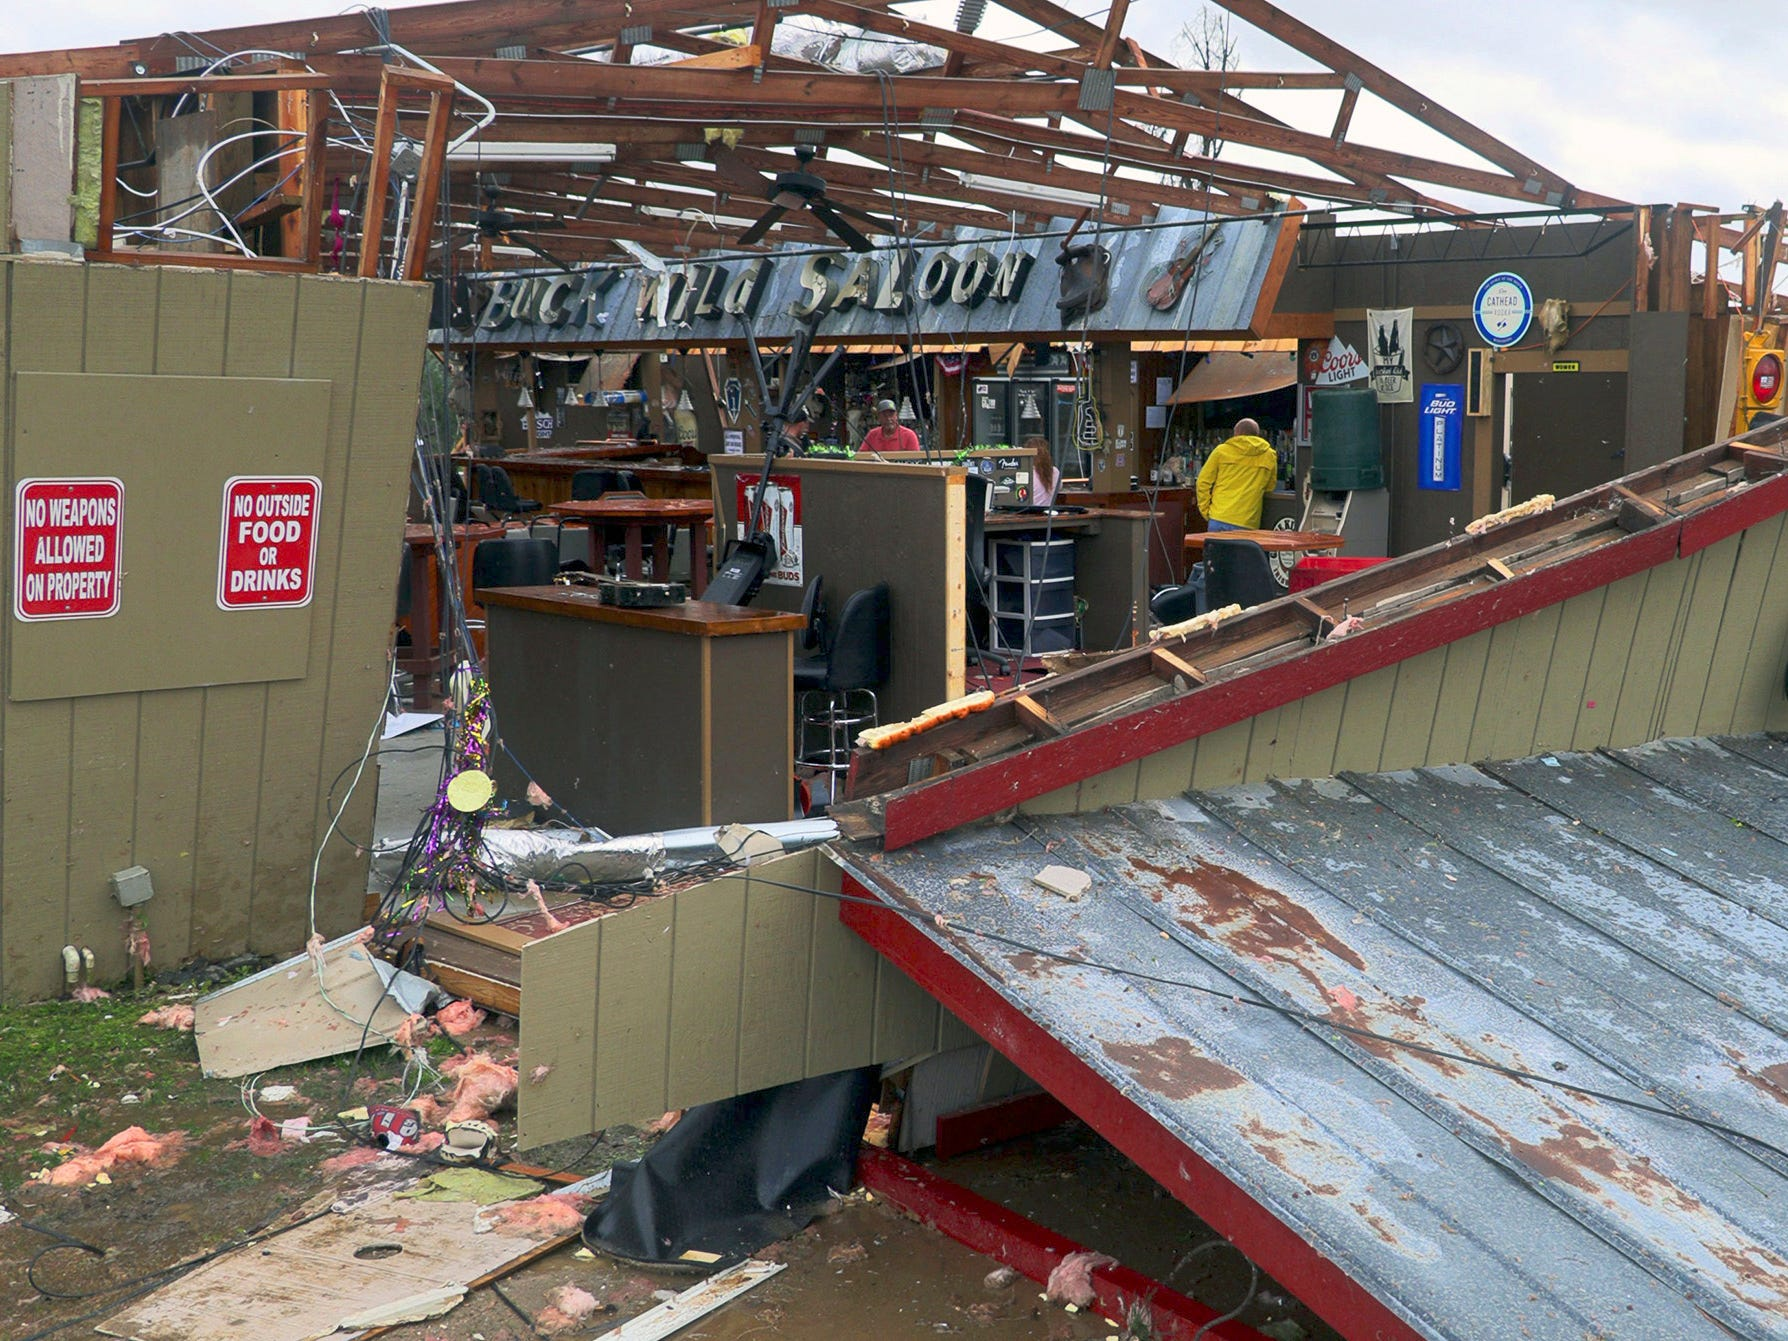 In this Sunday, March 3, 2019 photo, debris litters the Buck Wild Saloon, after it was heavily damaged by a tornado, in Smiths Station, Ala. (Mike Haskey/Ledger-Enquirer via AP) ORG XMIT: GACOL601